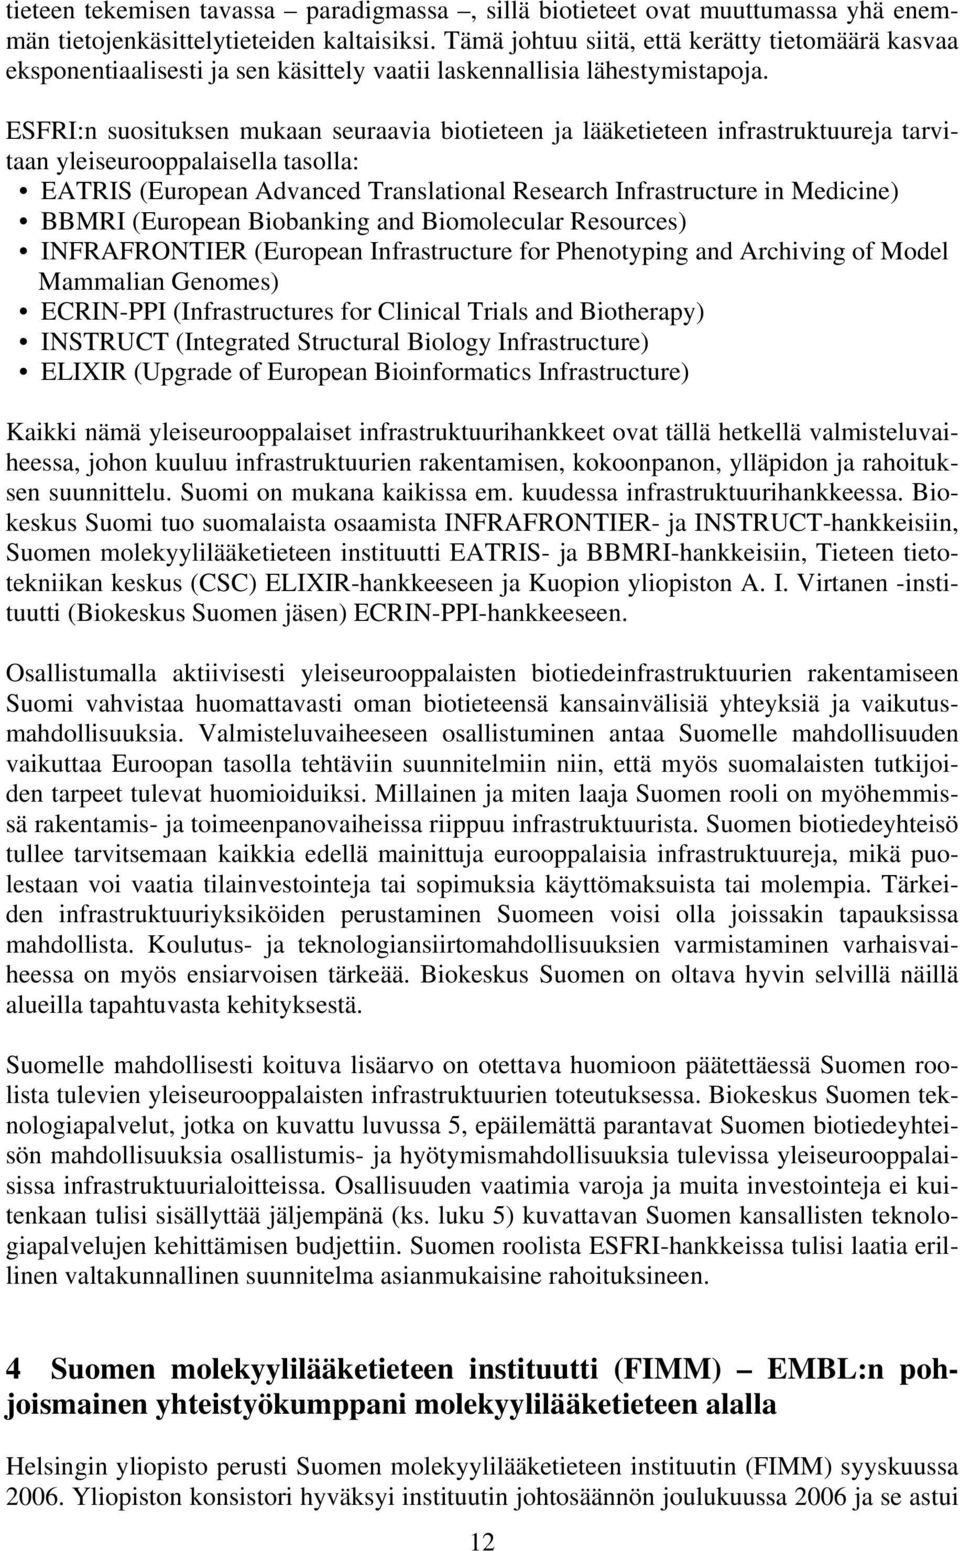 ESFRI:n suosituksen mukaan seuraavia biotieteen ja lääketieteen infrastruktuureja tarvitaan yleiseurooppalaisella tasolla: EATRIS (European Advanced Translational Research Infrastructure in Medicine)